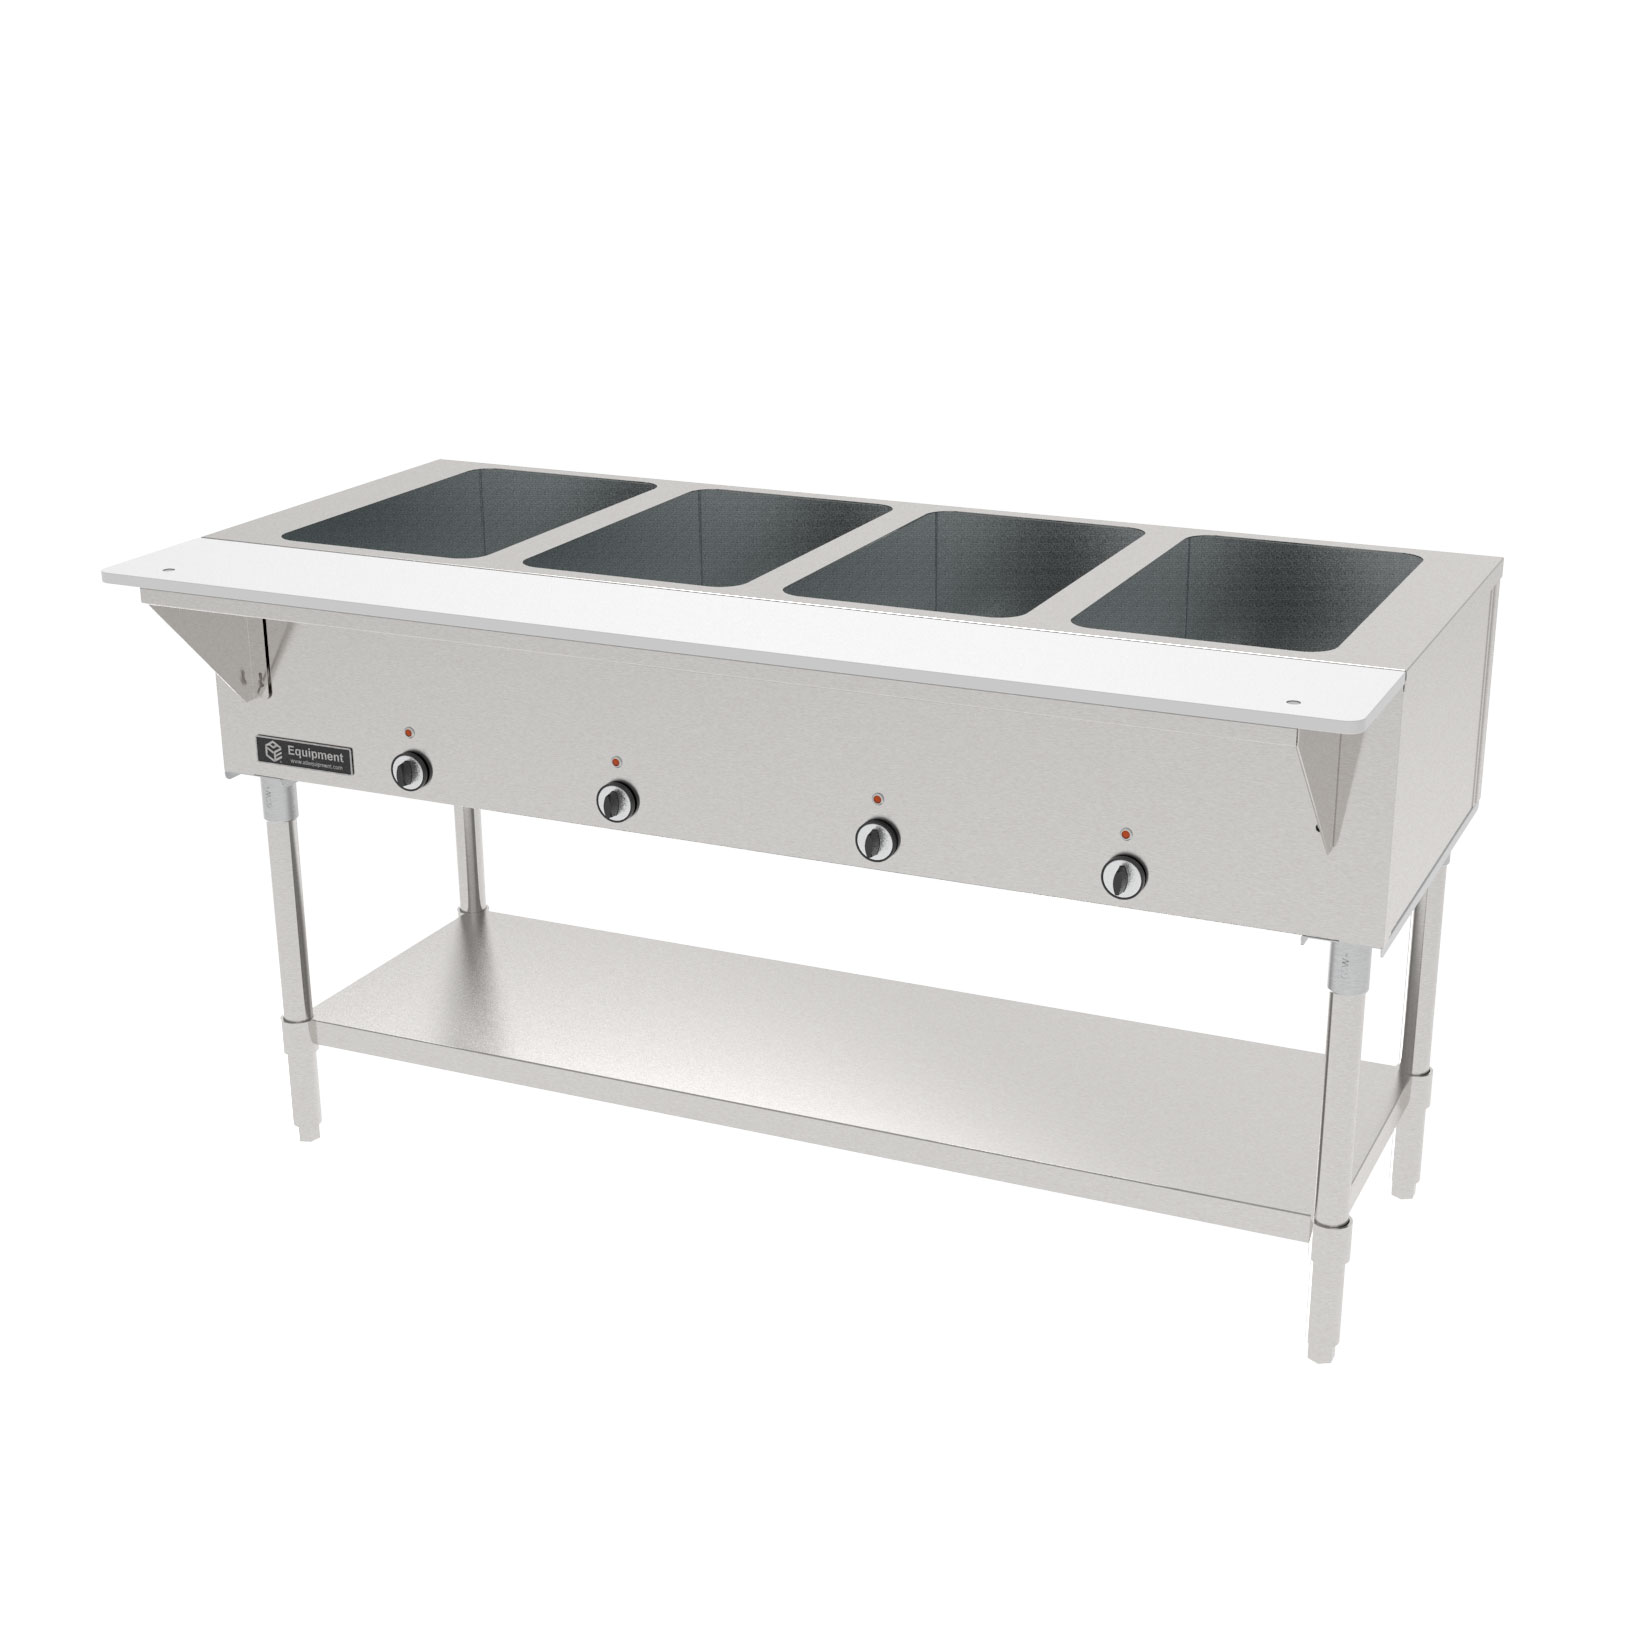 GSW USA ST-4WOE-240 serving counter, hot food, electric